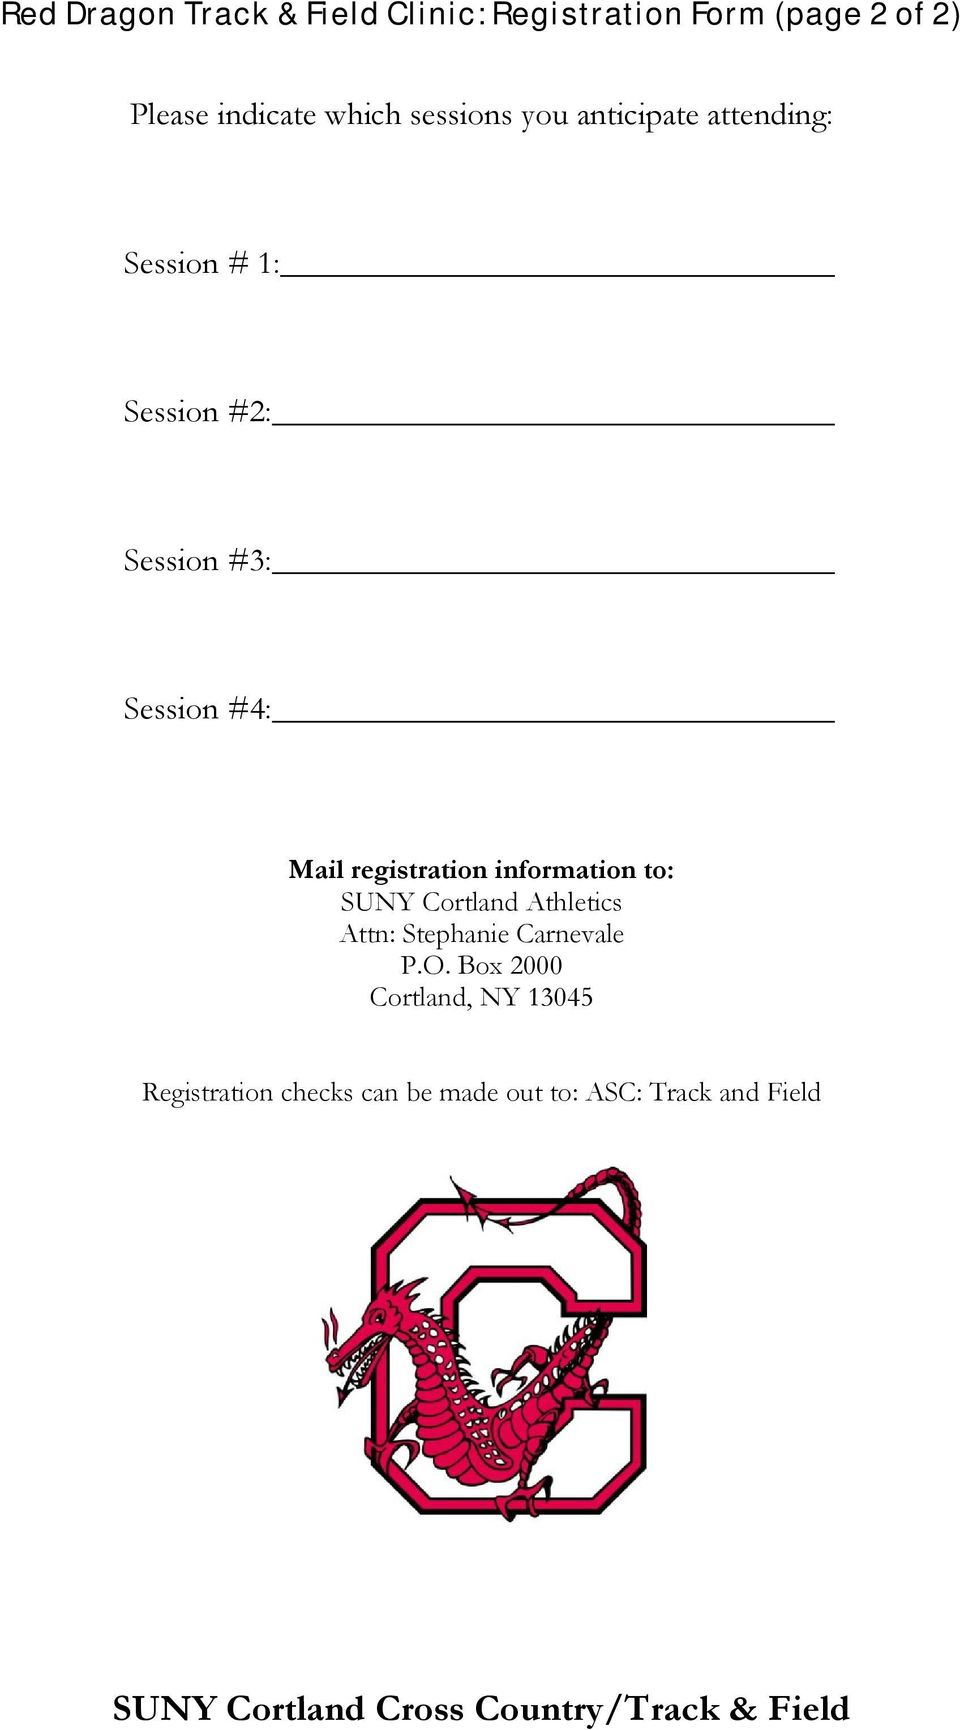 Mail registration information to: SUNY Cortland Athletics Attn: Stephanie Carnevale P.